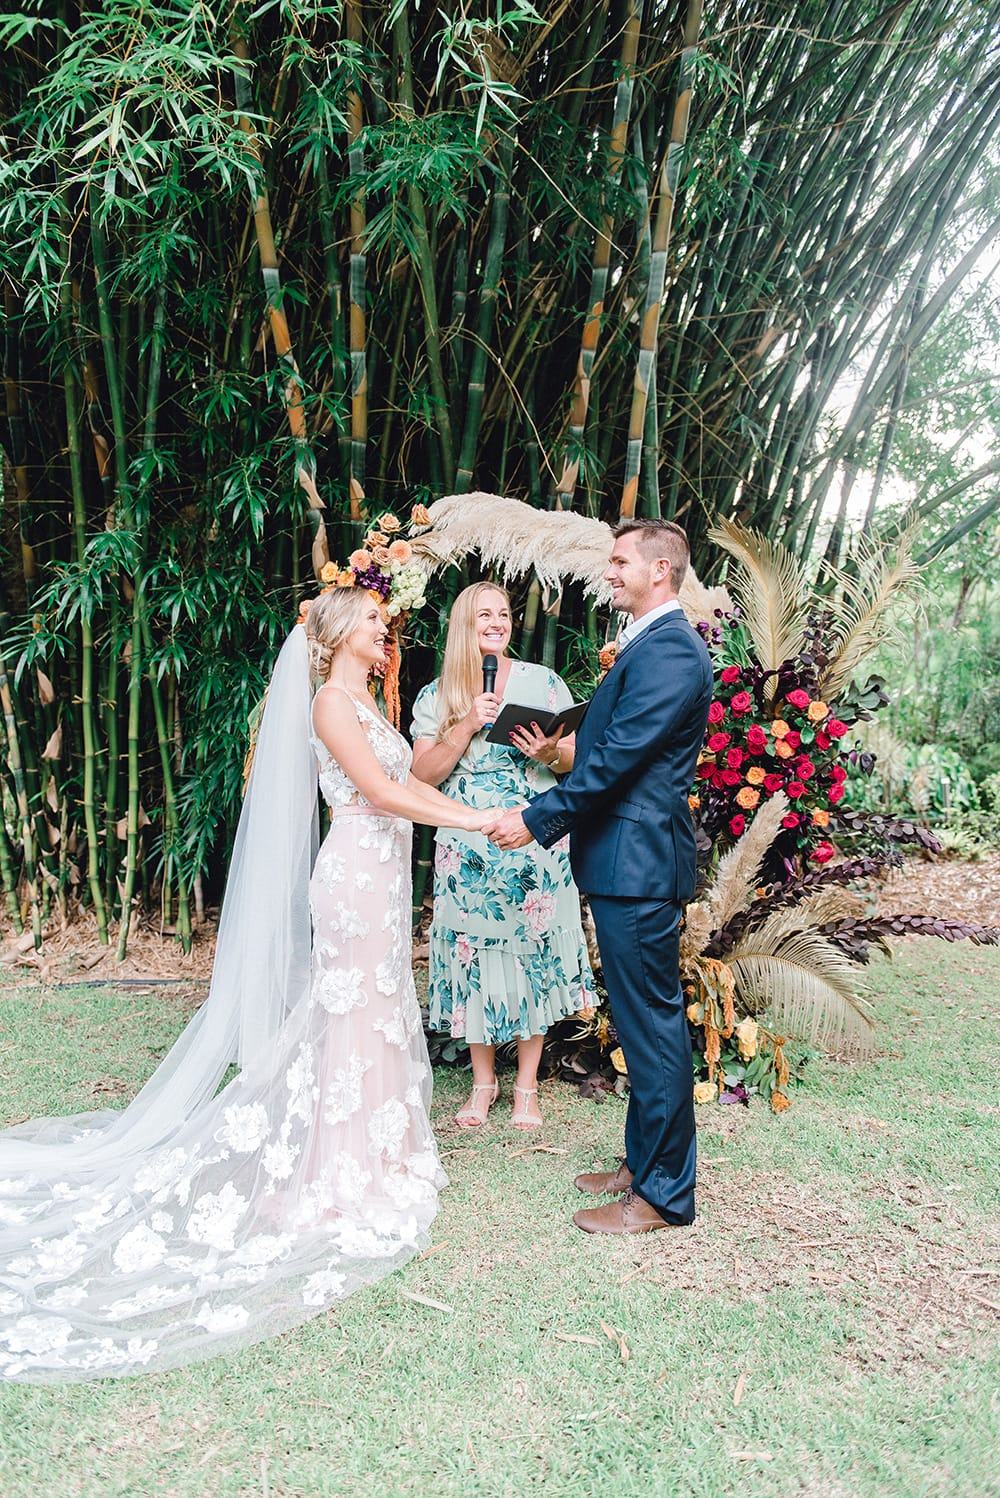 Violet Sunset Wedding Inspiration | Photography: Joy Philippe Photography